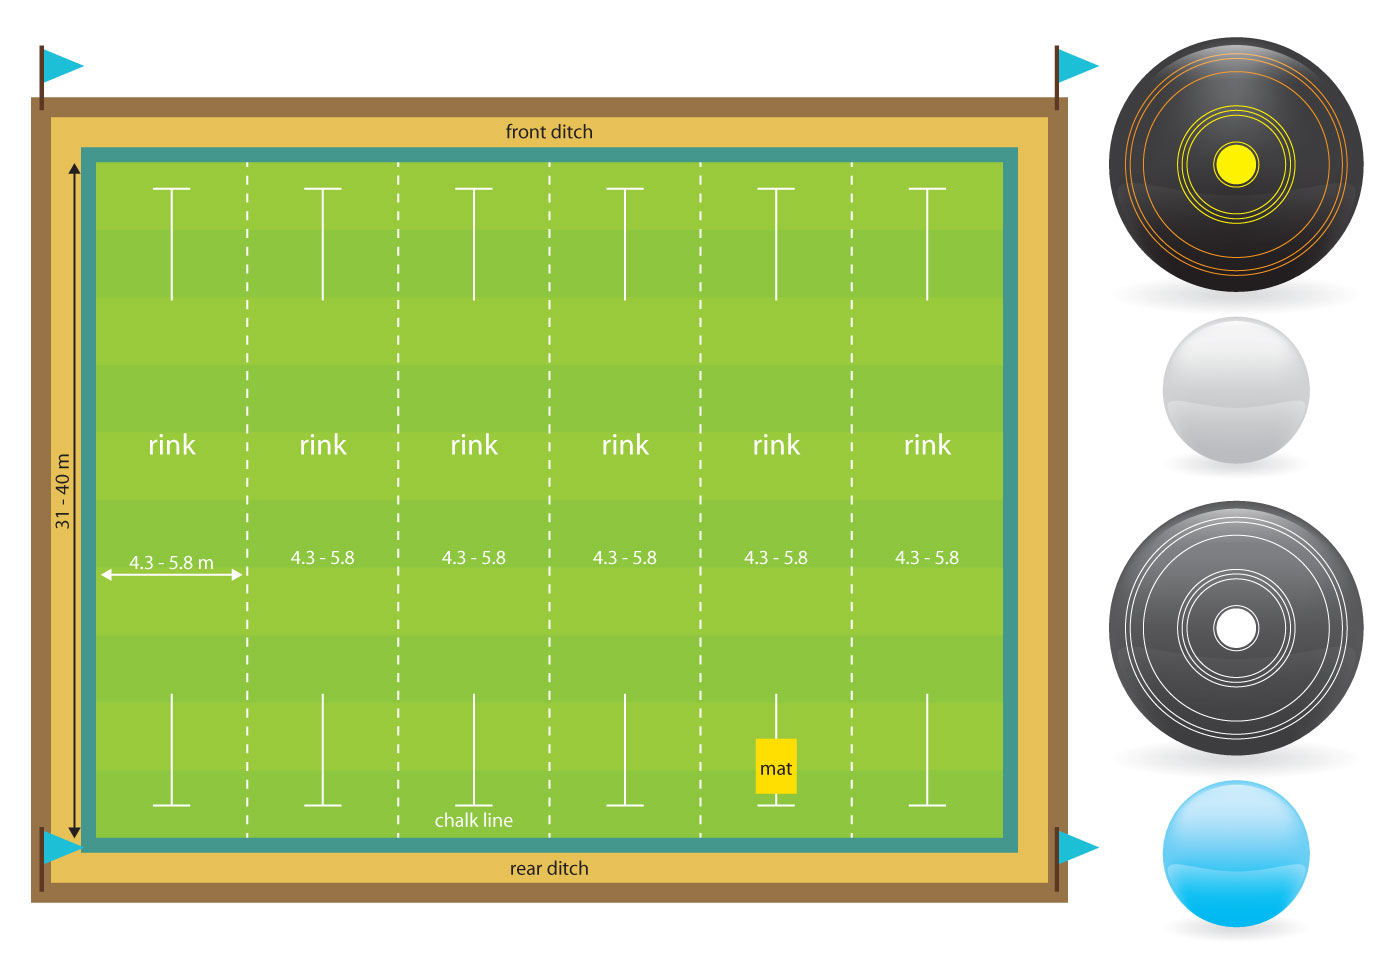 Lawn Bowl Court And Items - Download Free Vector Art, Stock Graphics & Images